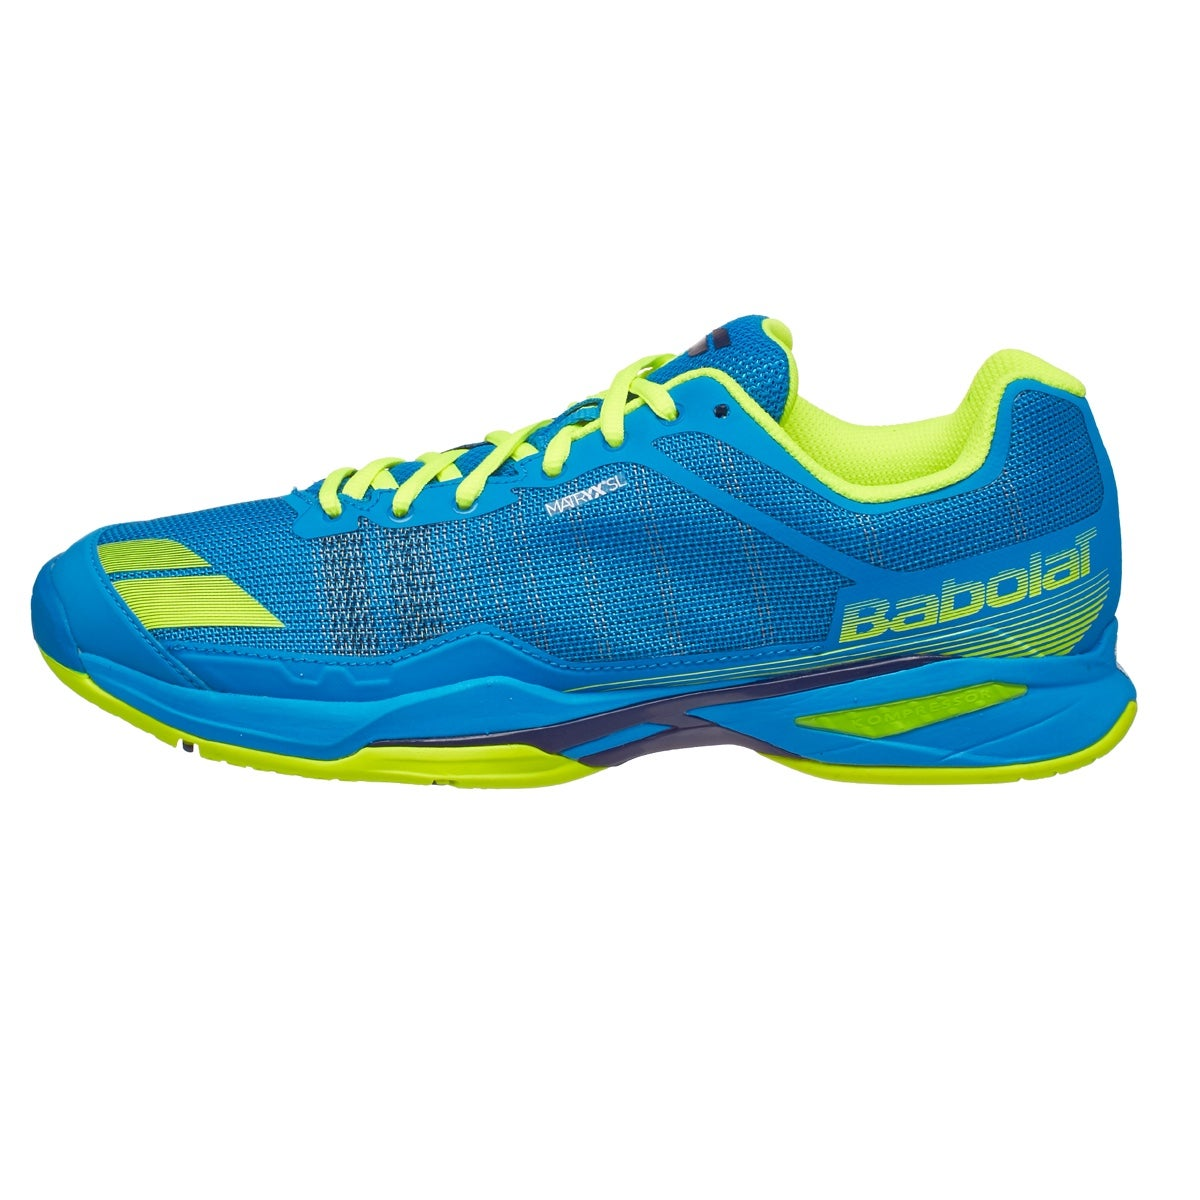 Babolat Tennis Shoes >> Babolat Jet Team Blue/Yellow Men's Shoes 360° View